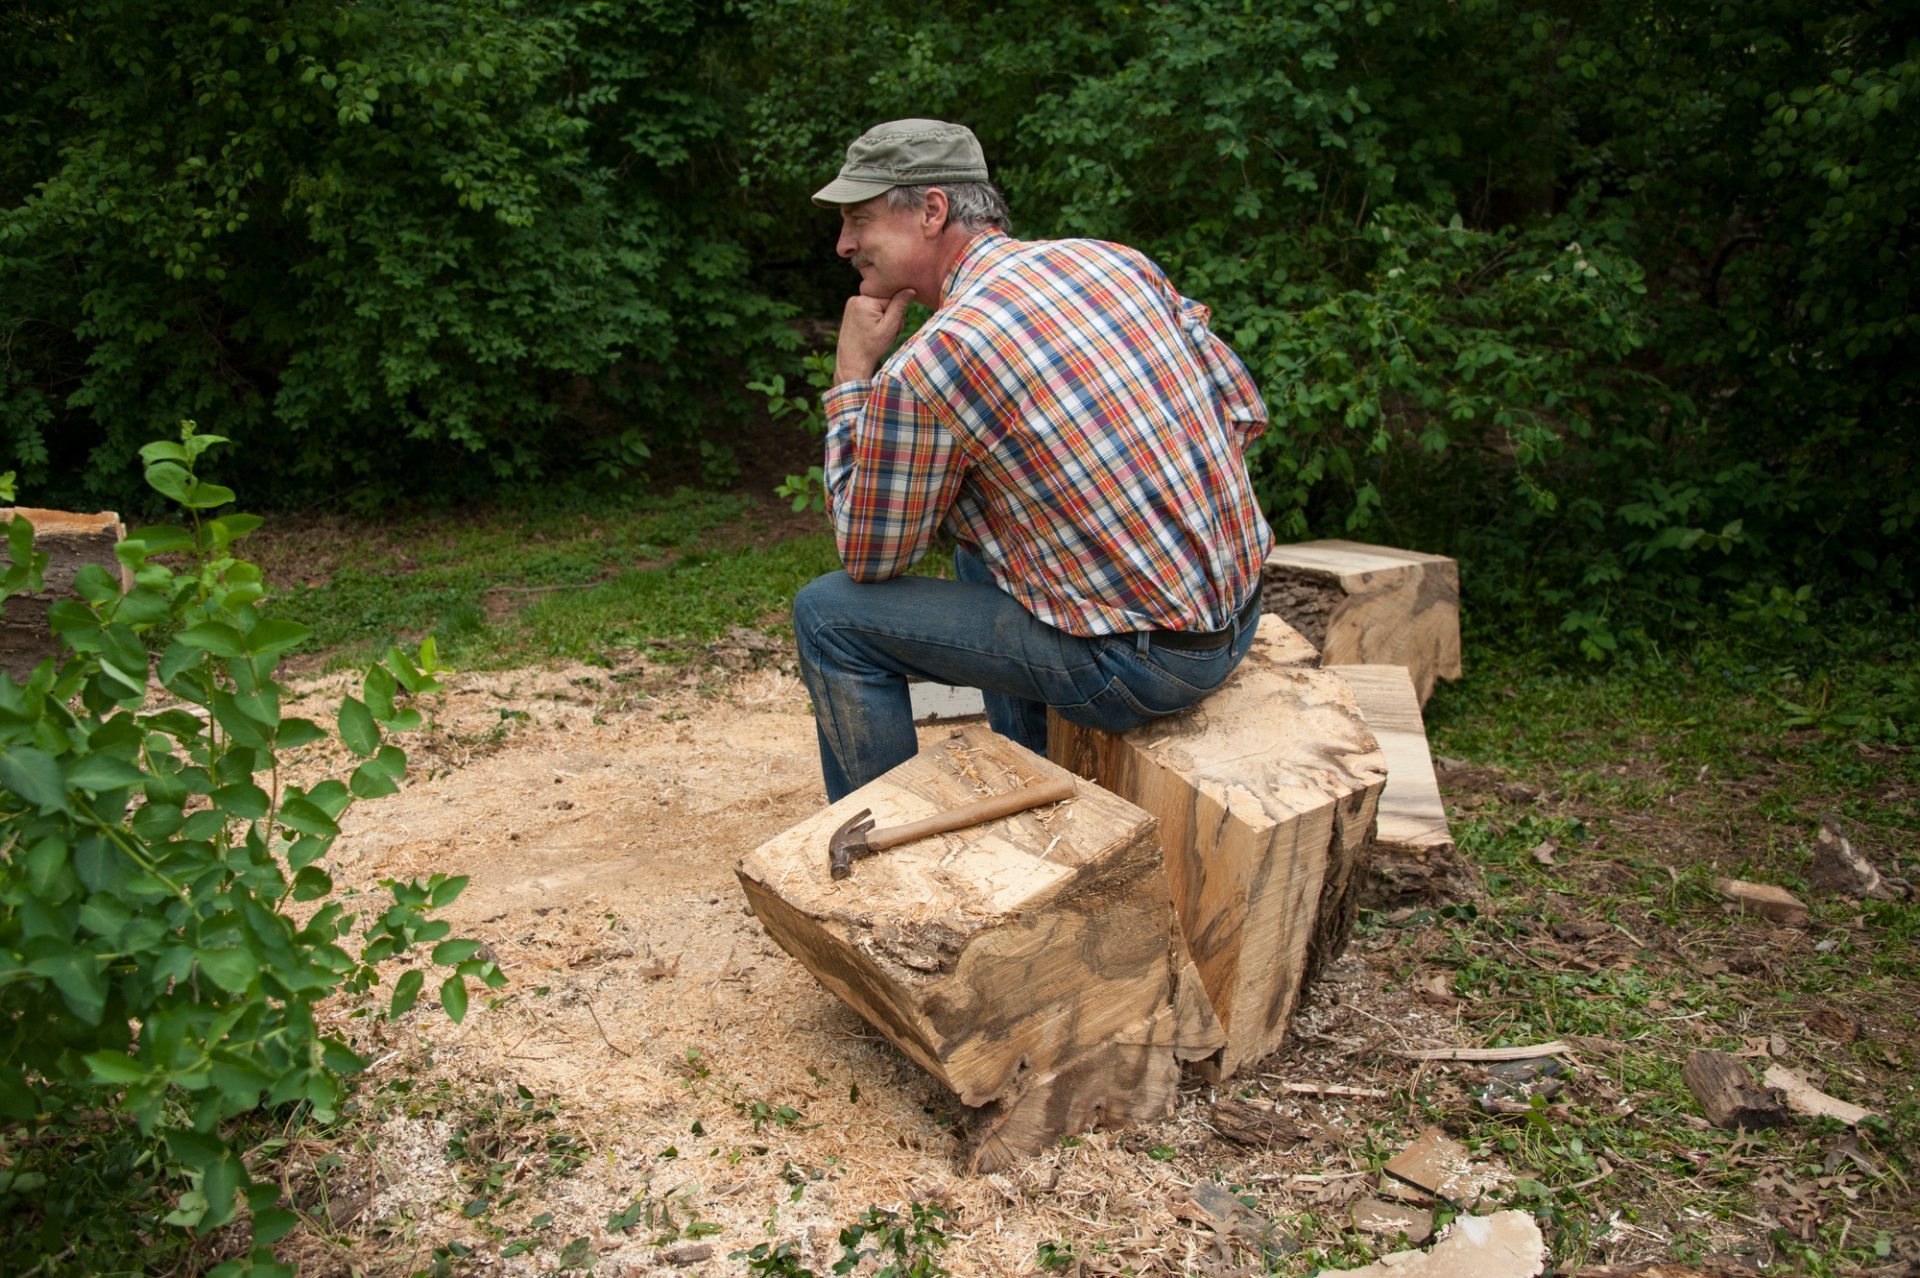 Photo: A man rests after cutting down an old tree.